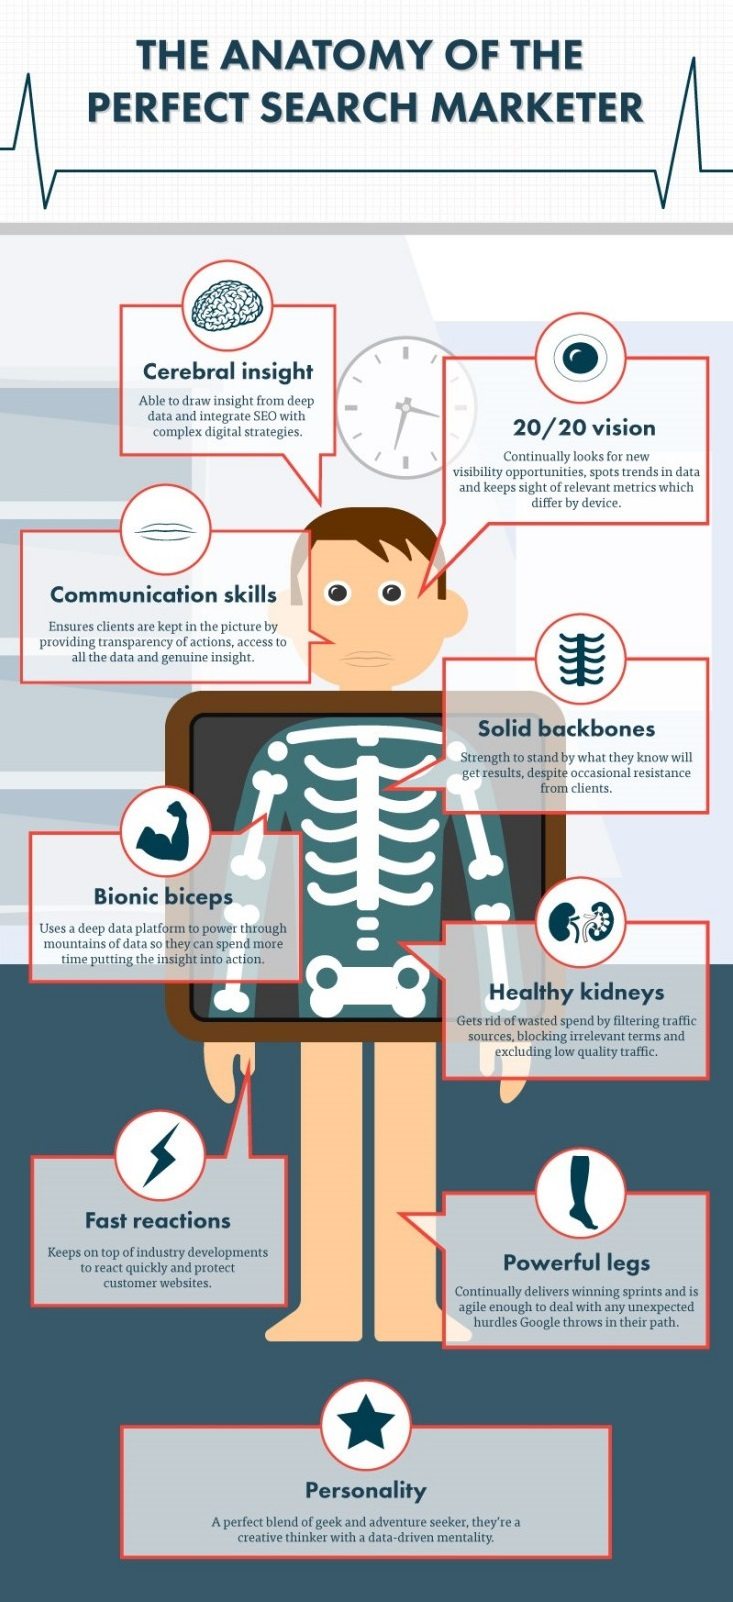 The anatomy of the perfect search marketer - Vertical Leap